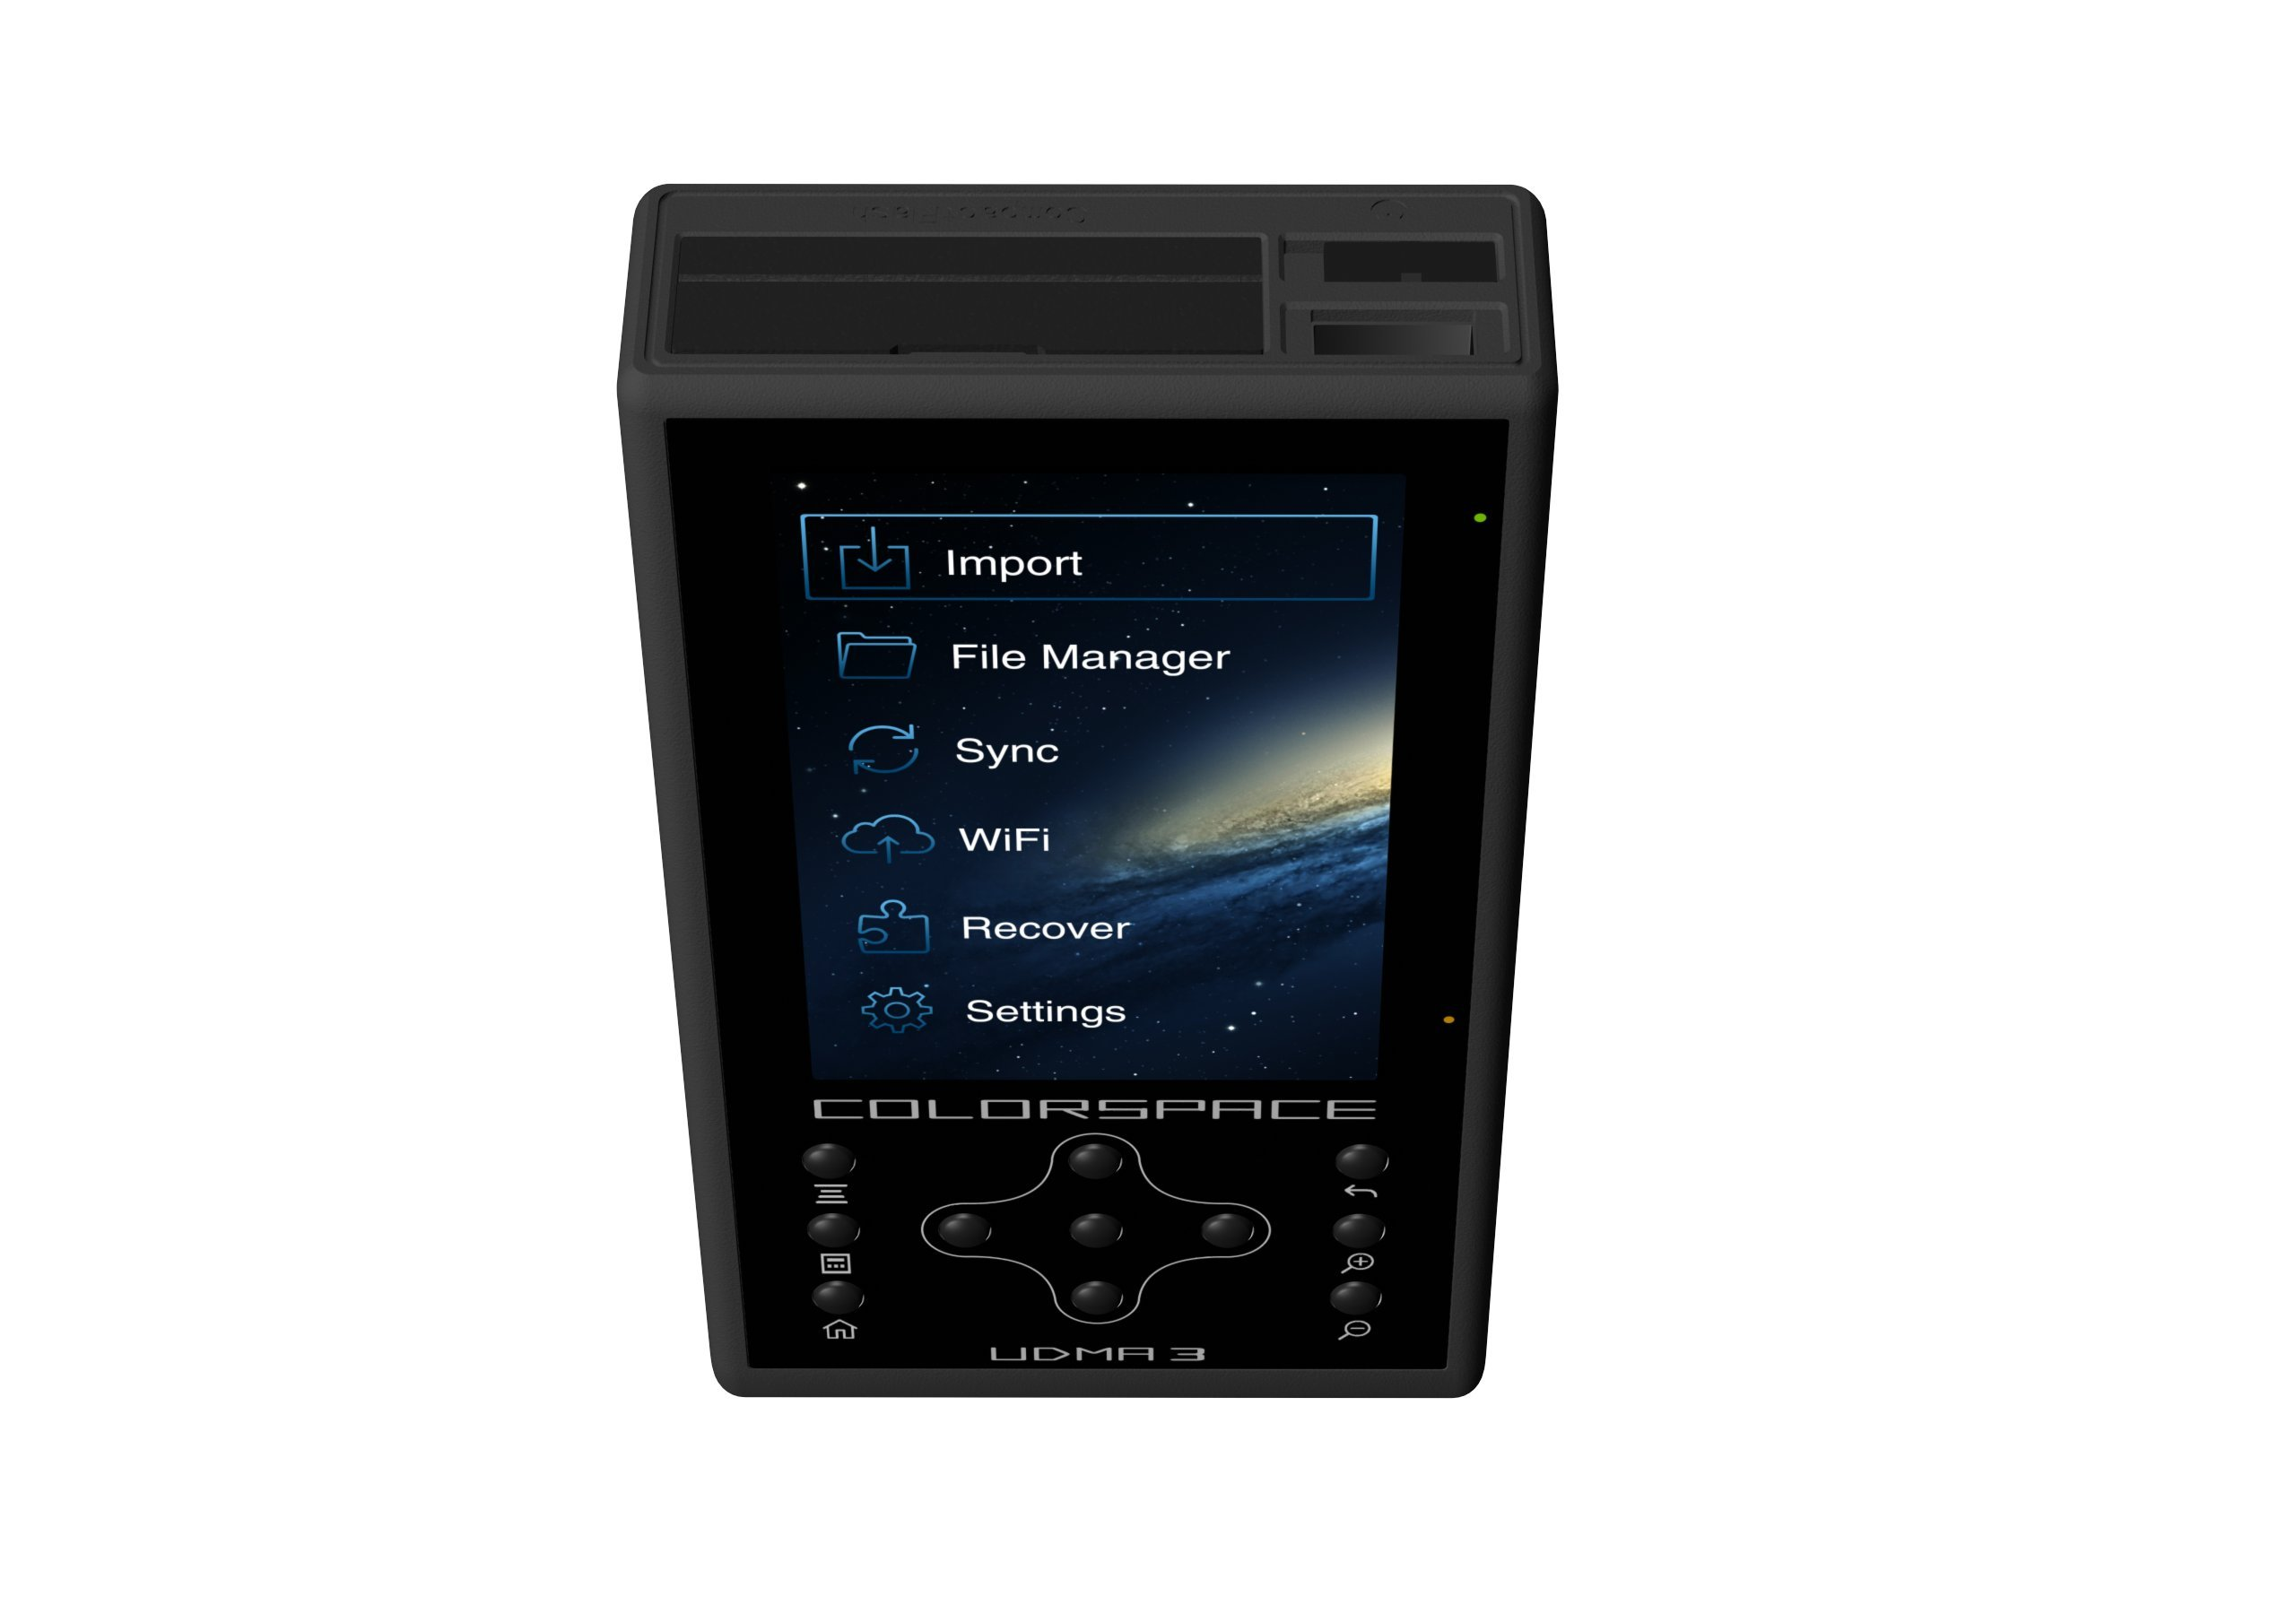 HyperDrive Colorspace UDMA3 500GB Portable Storage and Backup Device with Wi-Fi by HyperDrive (Image #2)